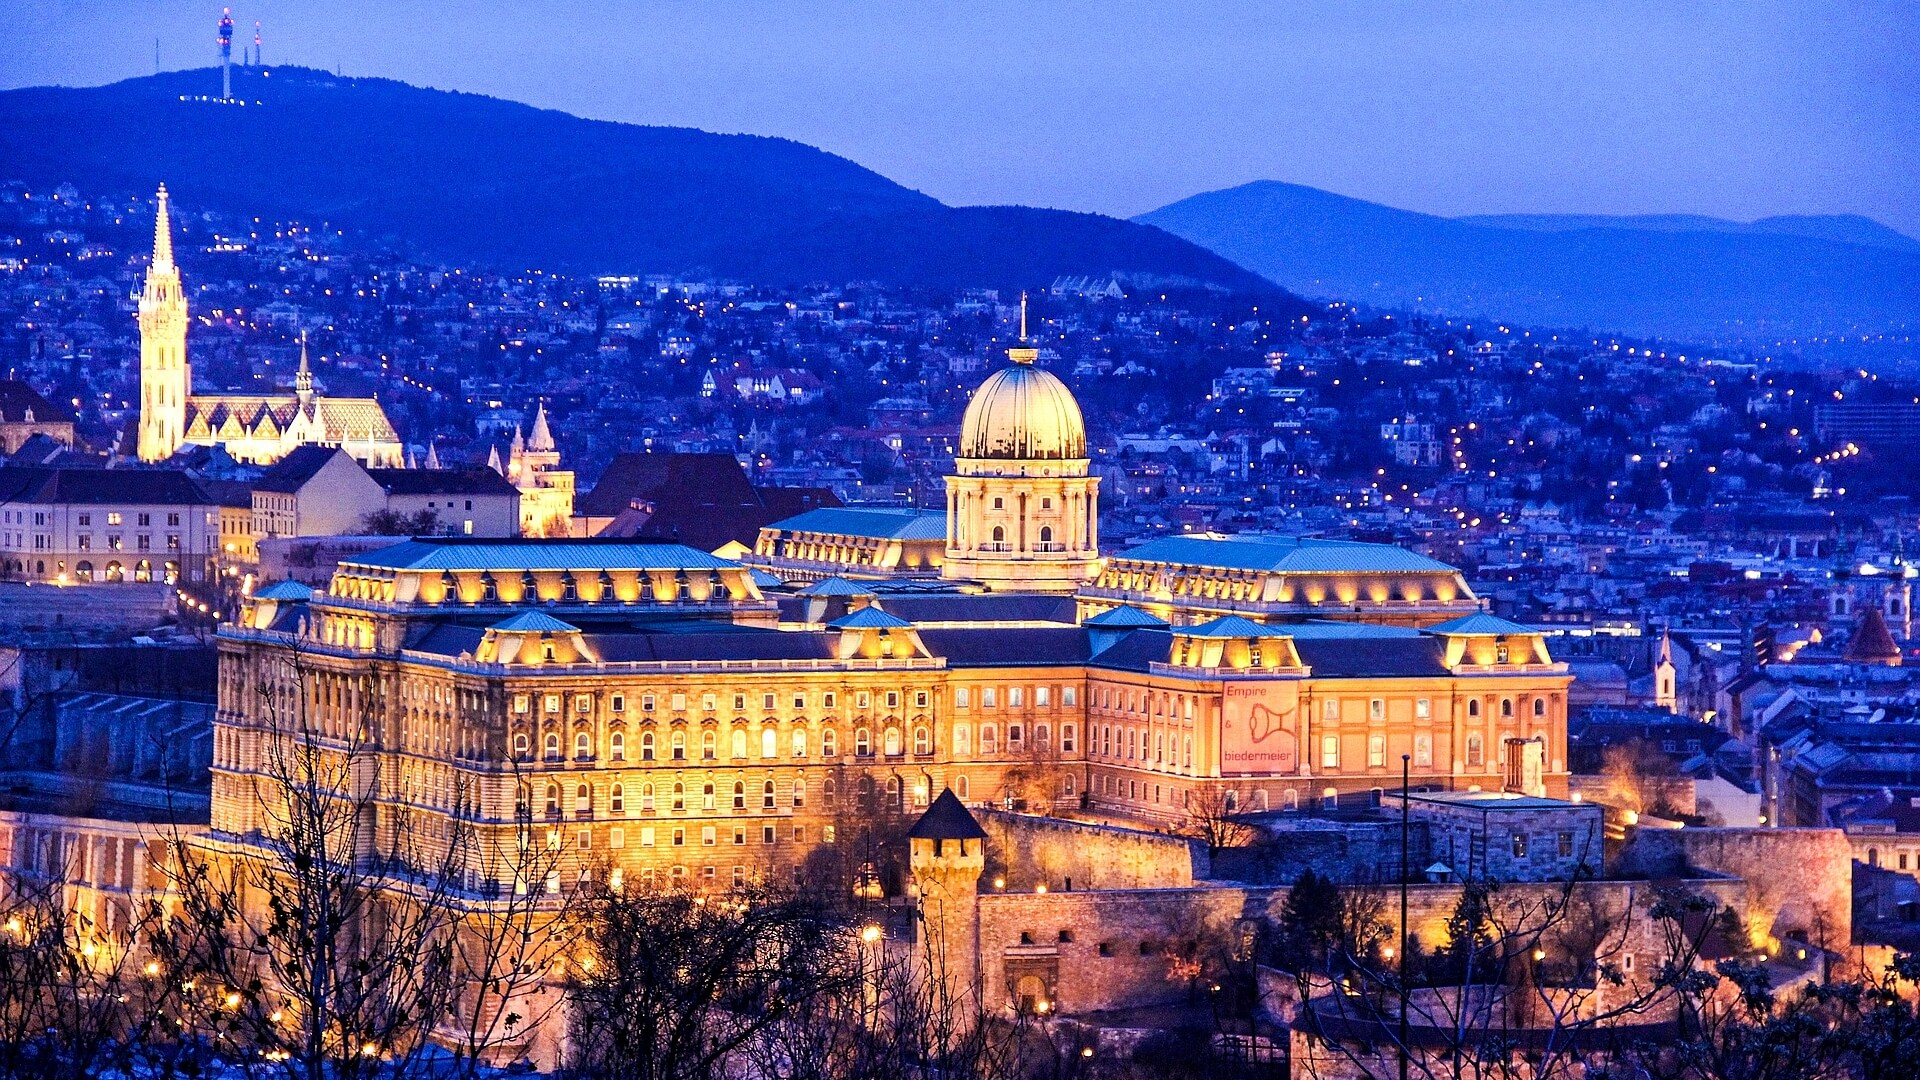 Buda Castle & Castle District in Budapest